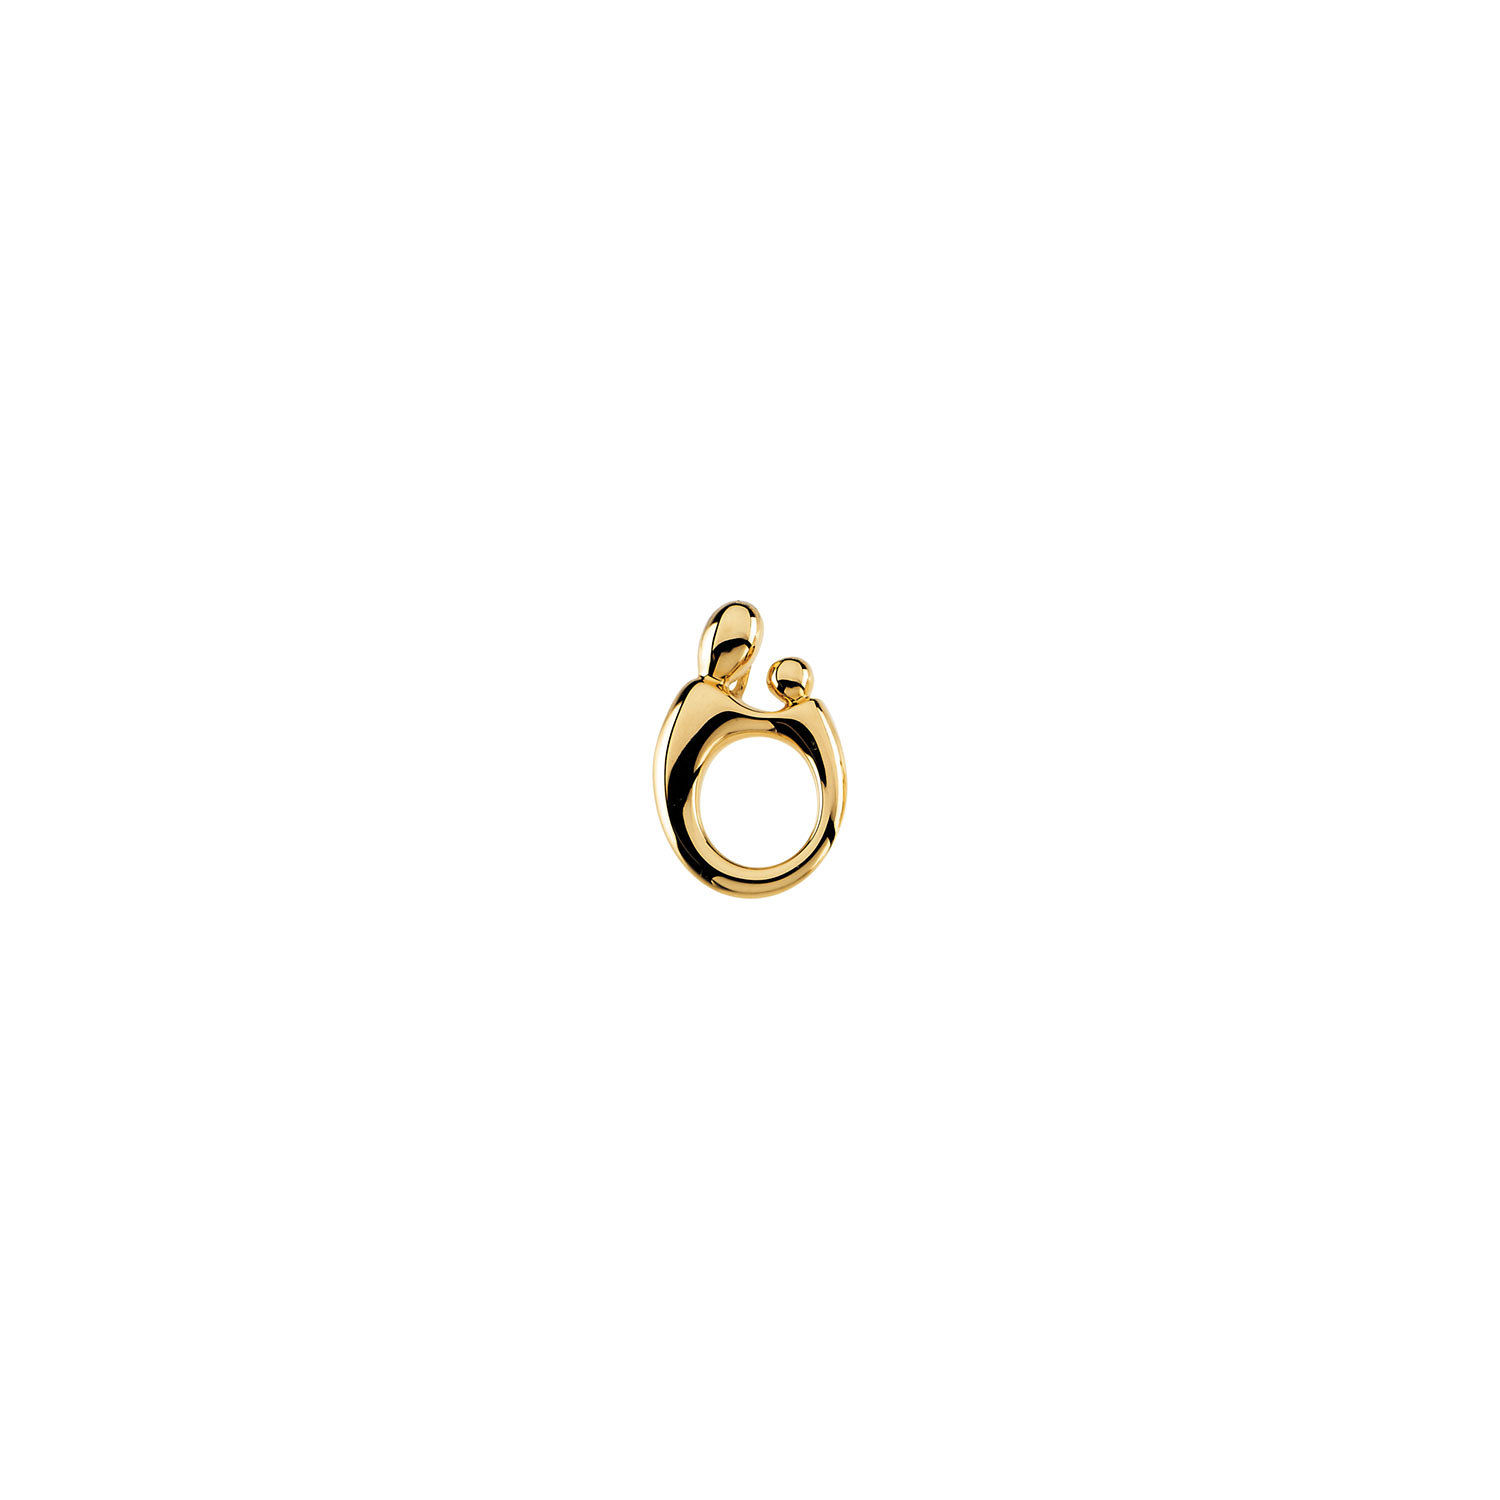 SilverTenet 14K Yellow Gold Mother and Child Hollow Back Pendant - Size: 20.25 X 13.50 Mm - Polished - 30 Day ...